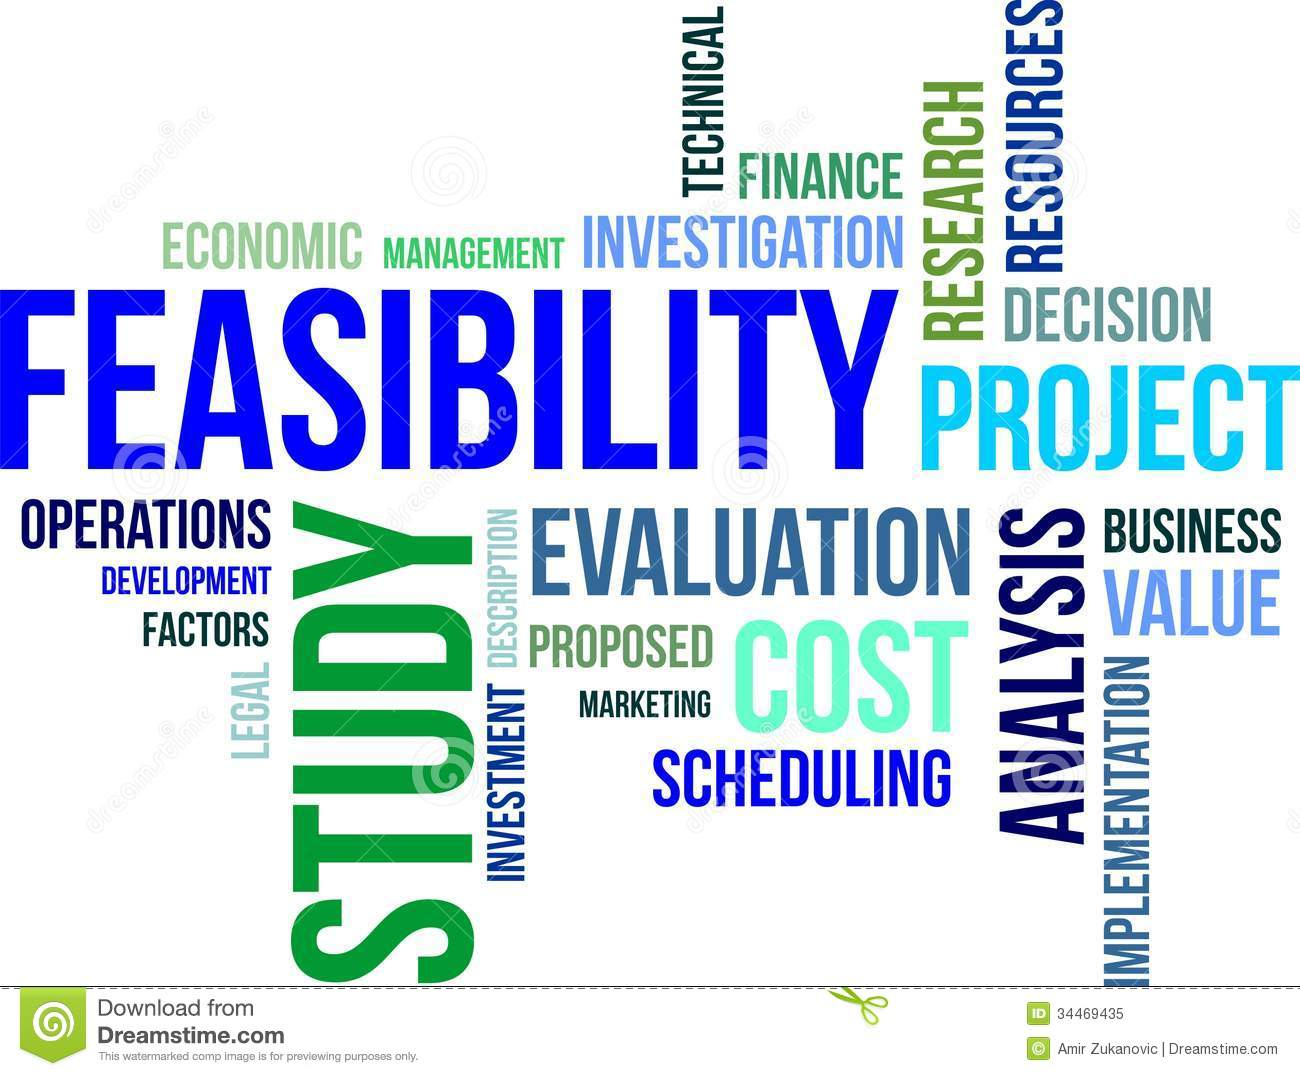 Categories of Feasibility